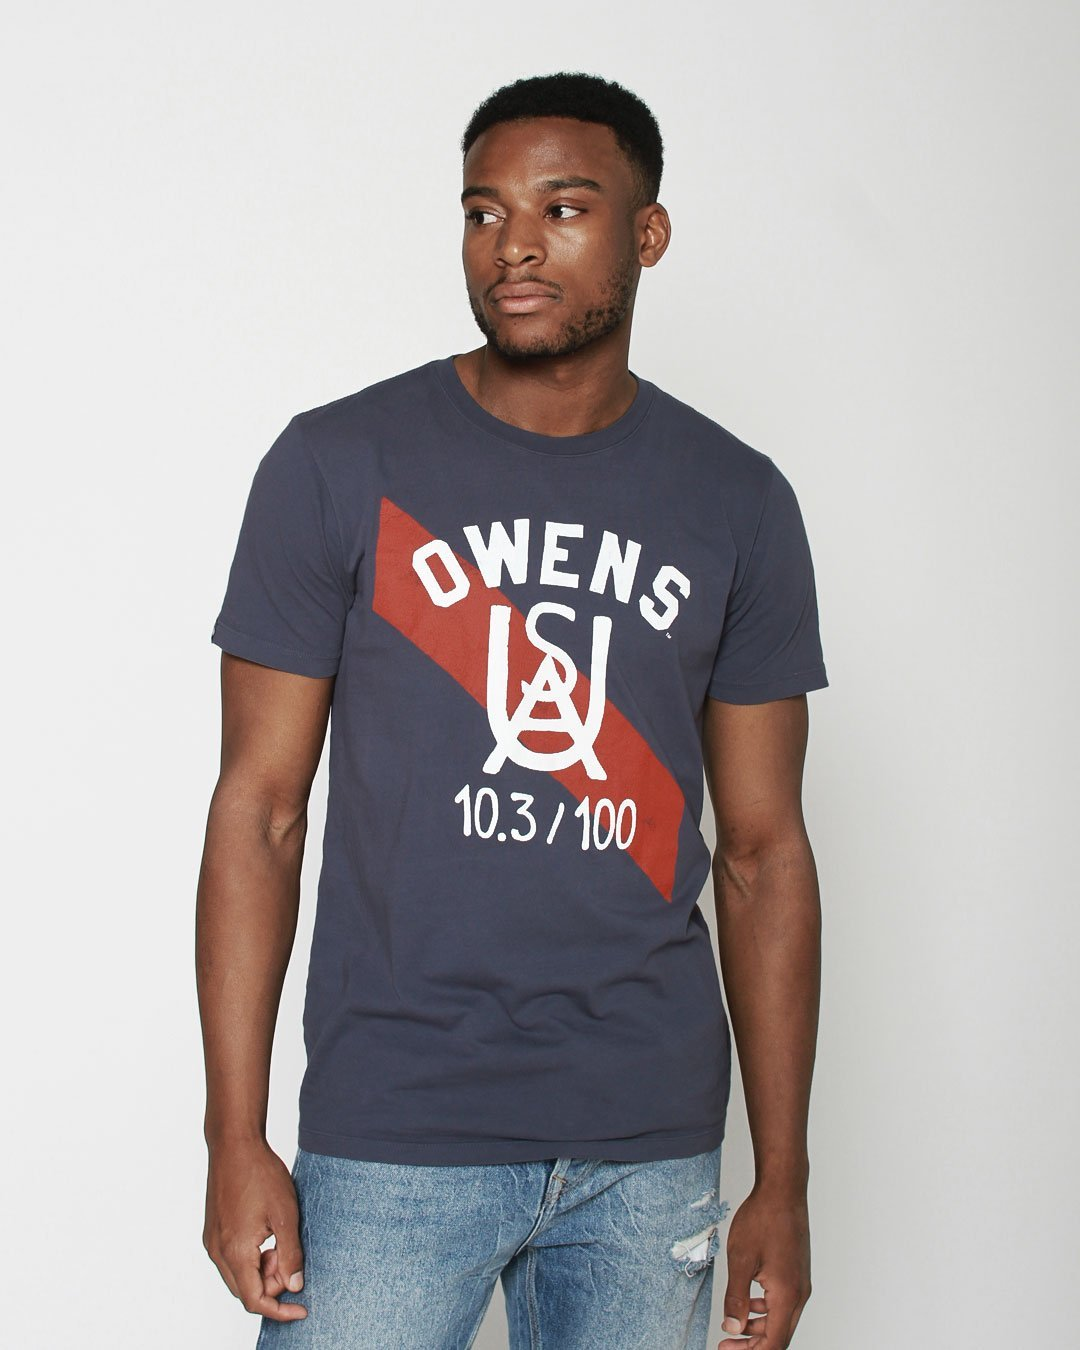 Jesse Owens Ground Breakers Tee - Roots of Inc dba Roots of Fight